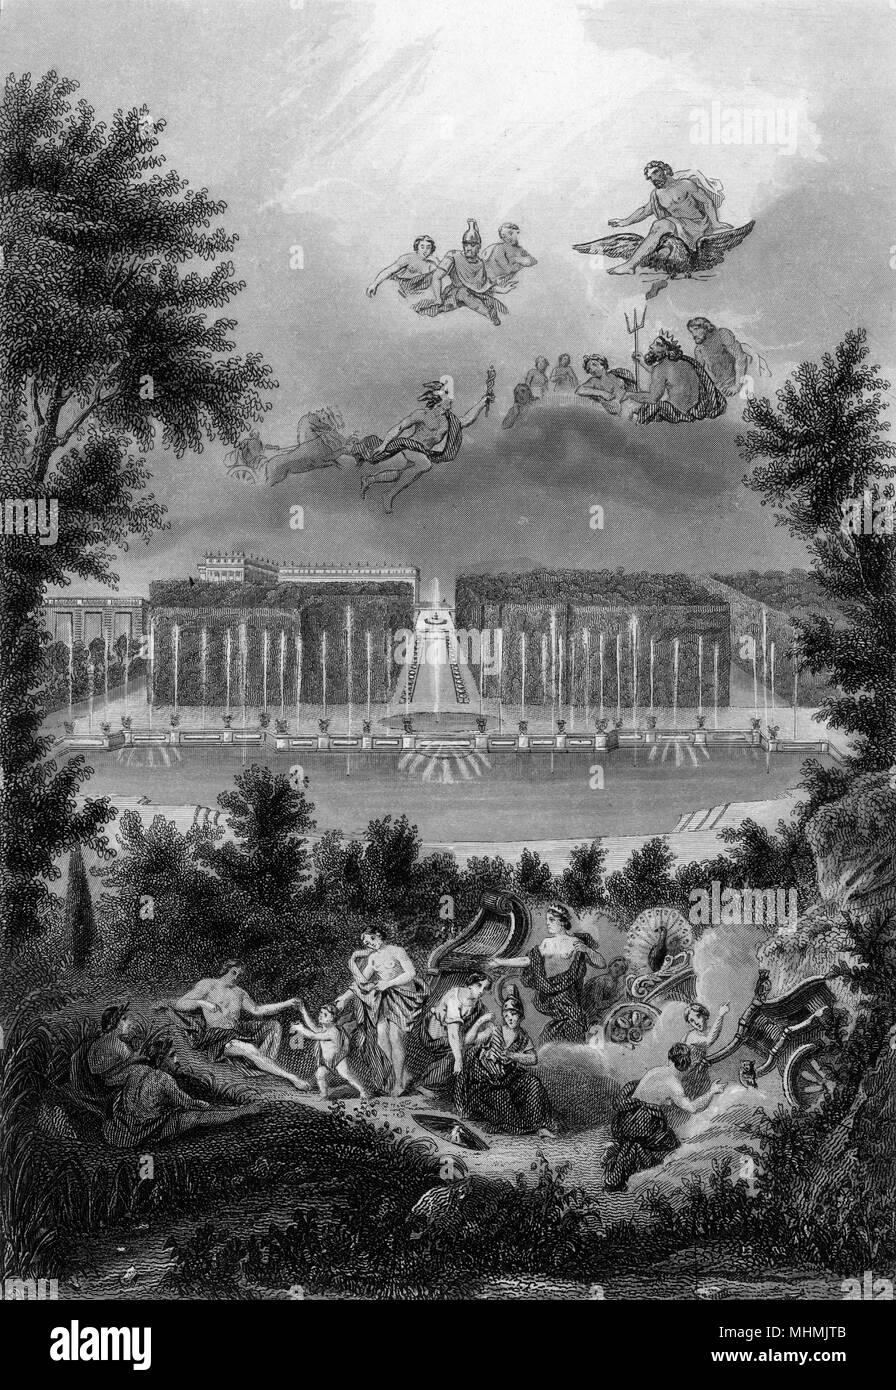 BASSIN DE NEPTUNE Figures from mythology disport round the pool, but they hide themselves when Louis and his courtiers come out of the palace for some fresh air     Date: 1688 - Stock Image